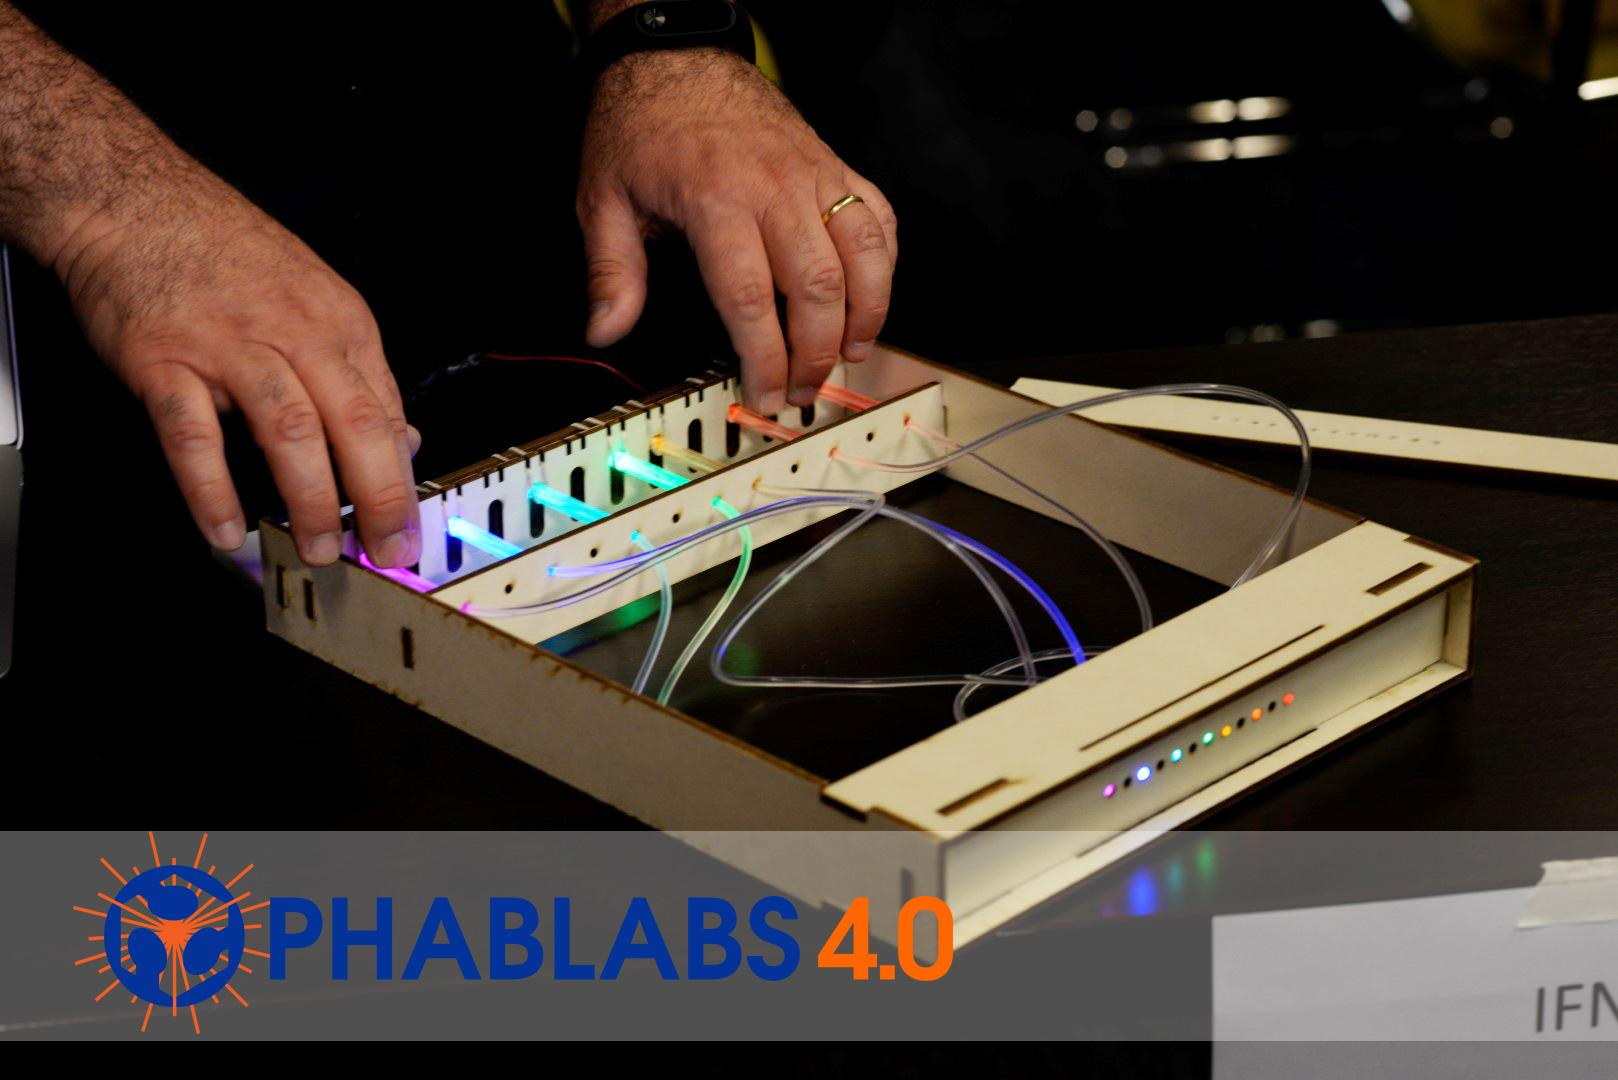 PHABLABS4.0 : Be creative with Light and Light technology.